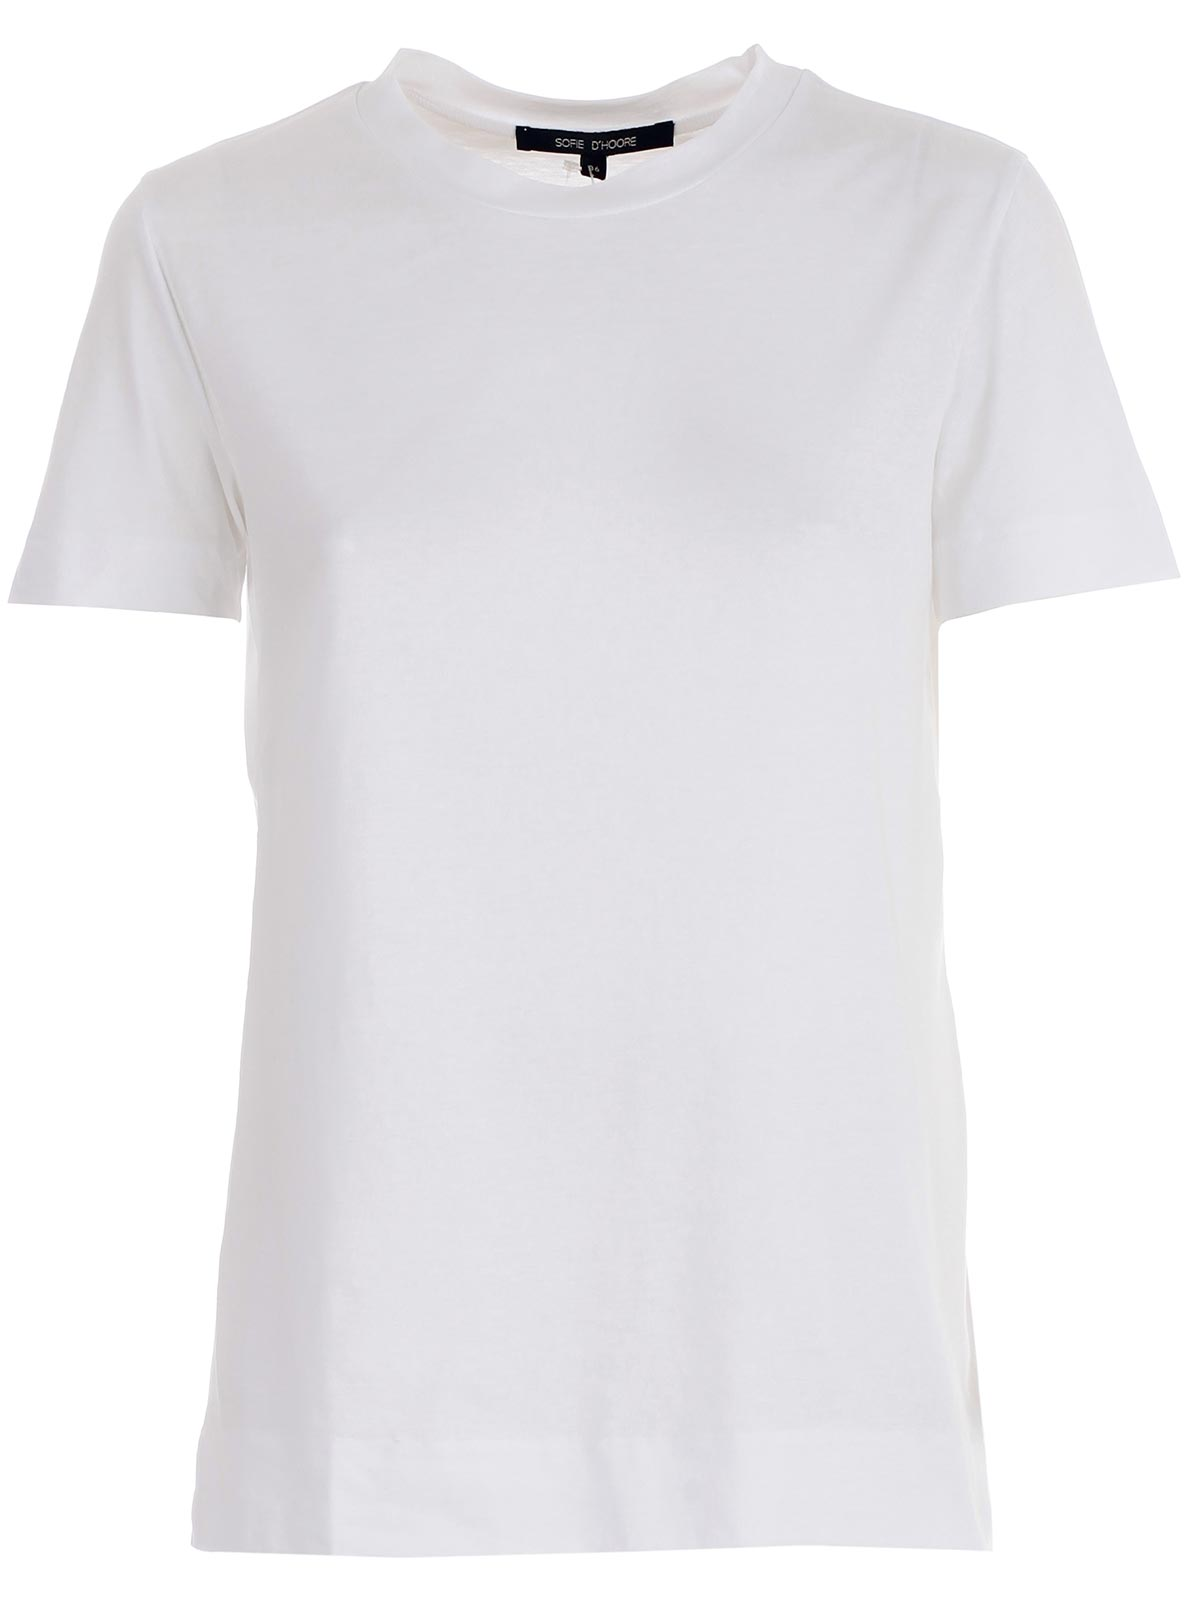 Picture of SOFIE D'HOORE T-SHIRT